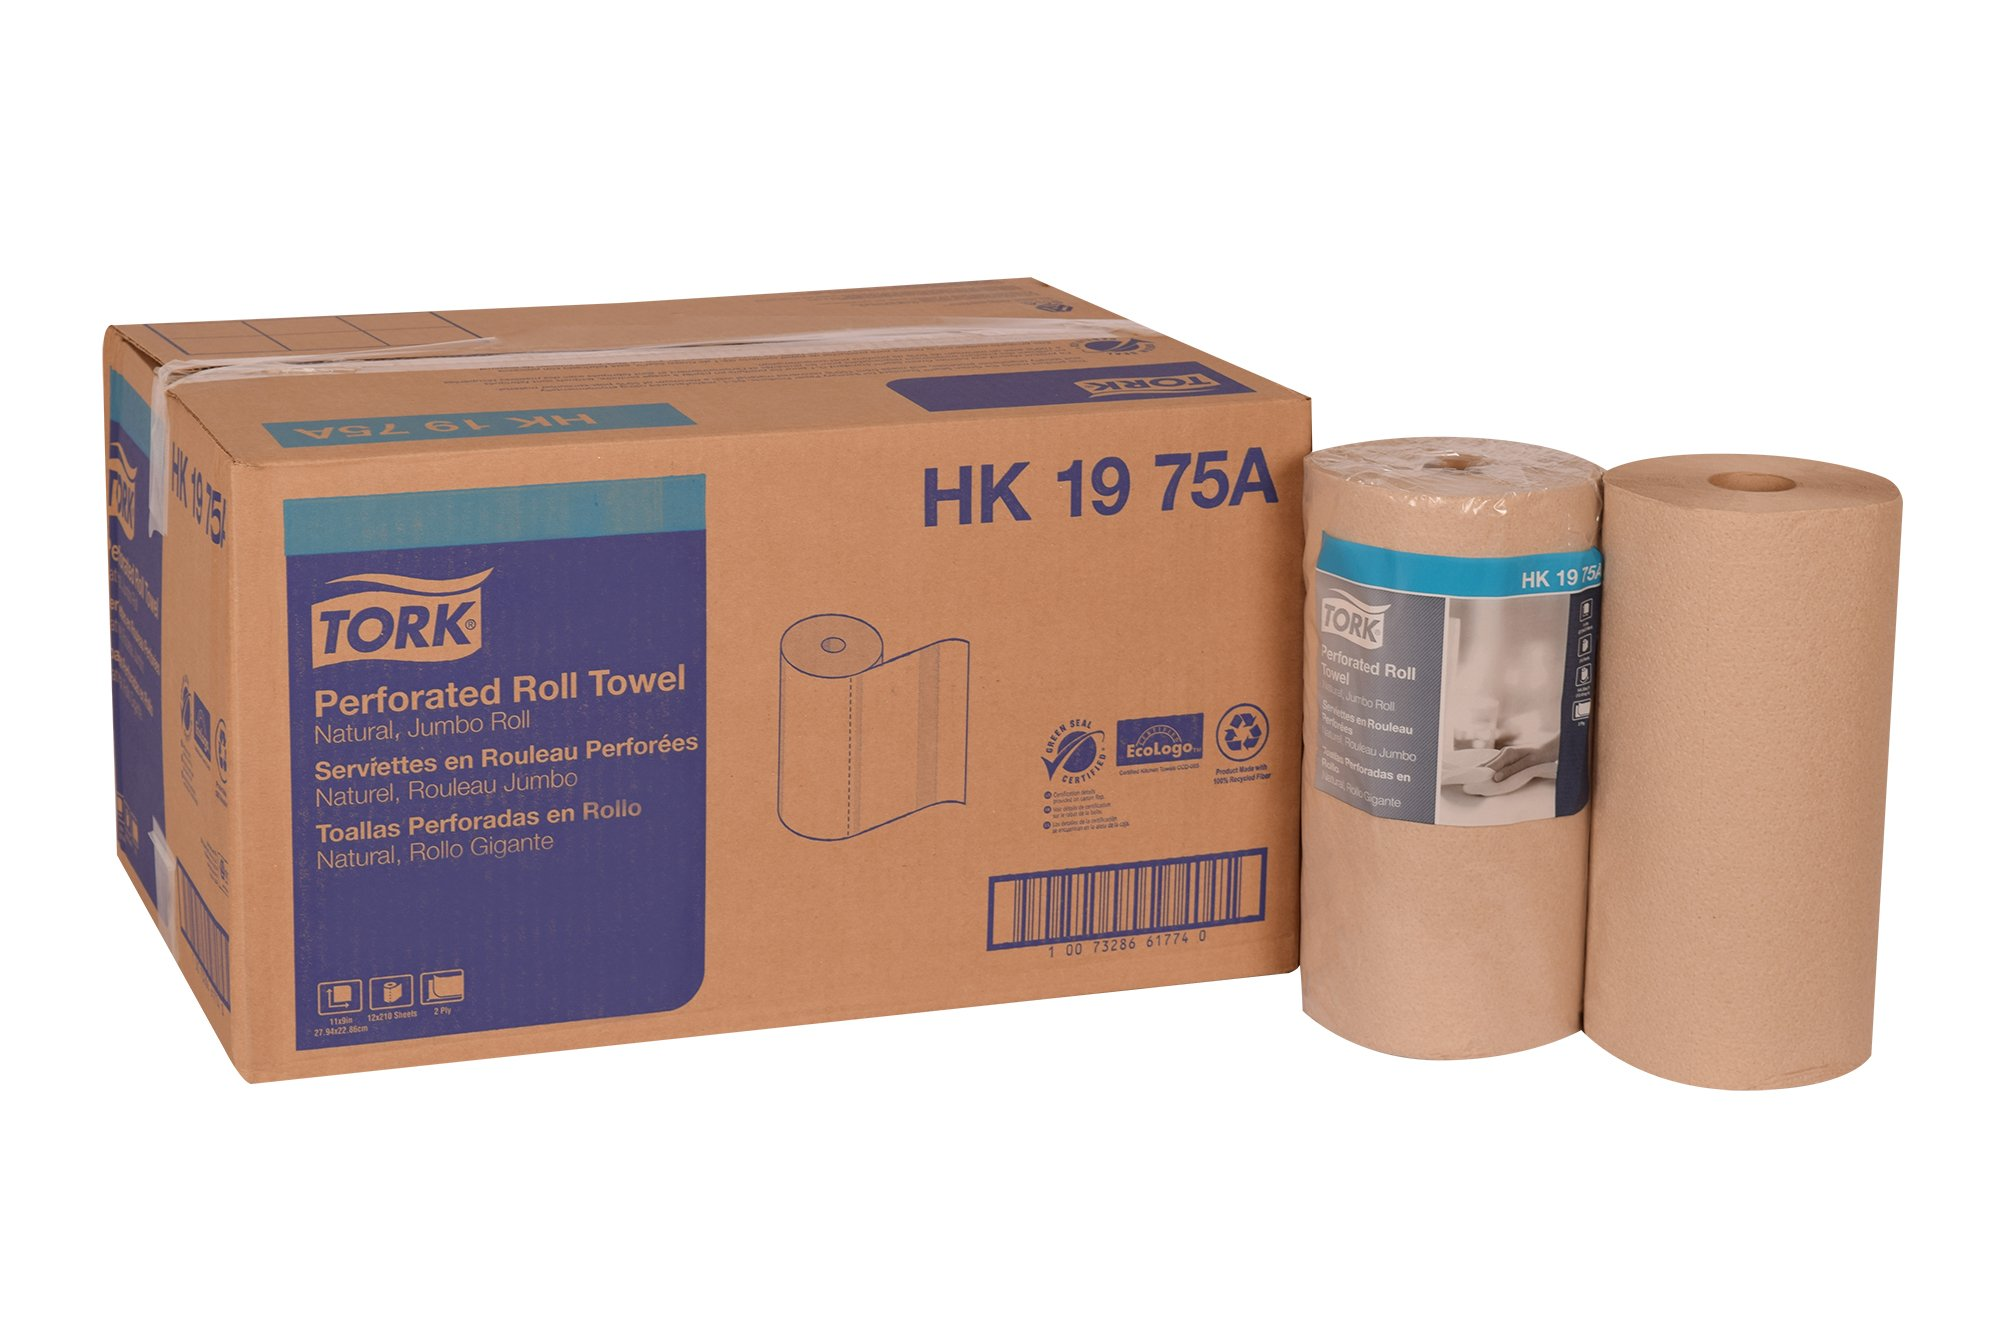 Tork HK1975A Perforated Roll Towel, Jumbo Roll, 2-Ply, 11'' Width x 9'' Length, Natural, Green Seal Certified (Case of 12 Rolls, 210 per Roll, 2,520 Towels)